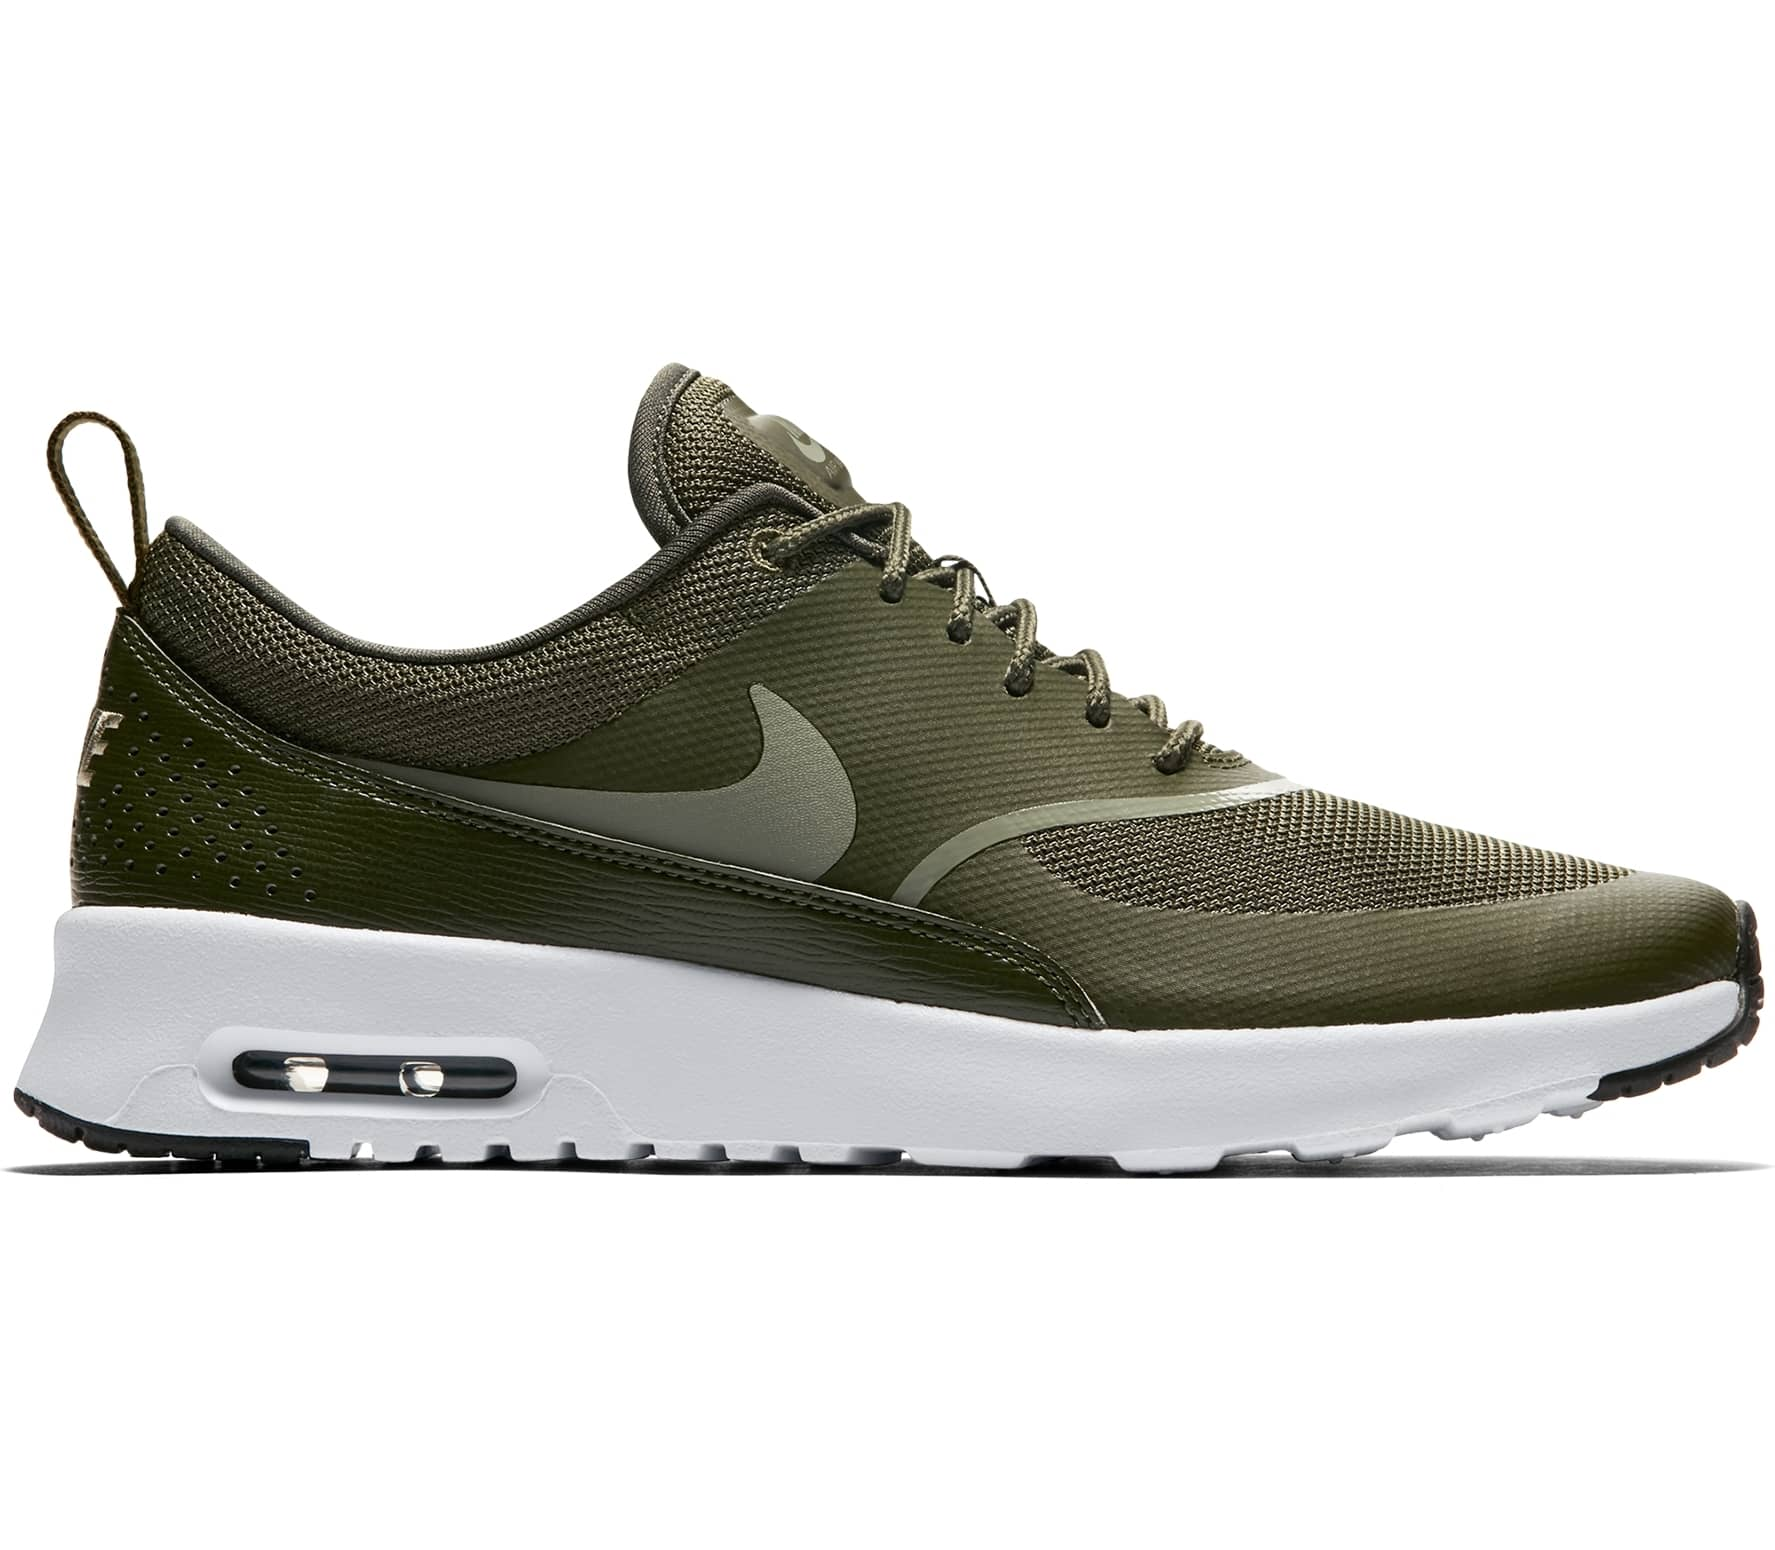 nike air max thea damen sneaker khaki im online shop. Black Bedroom Furniture Sets. Home Design Ideas